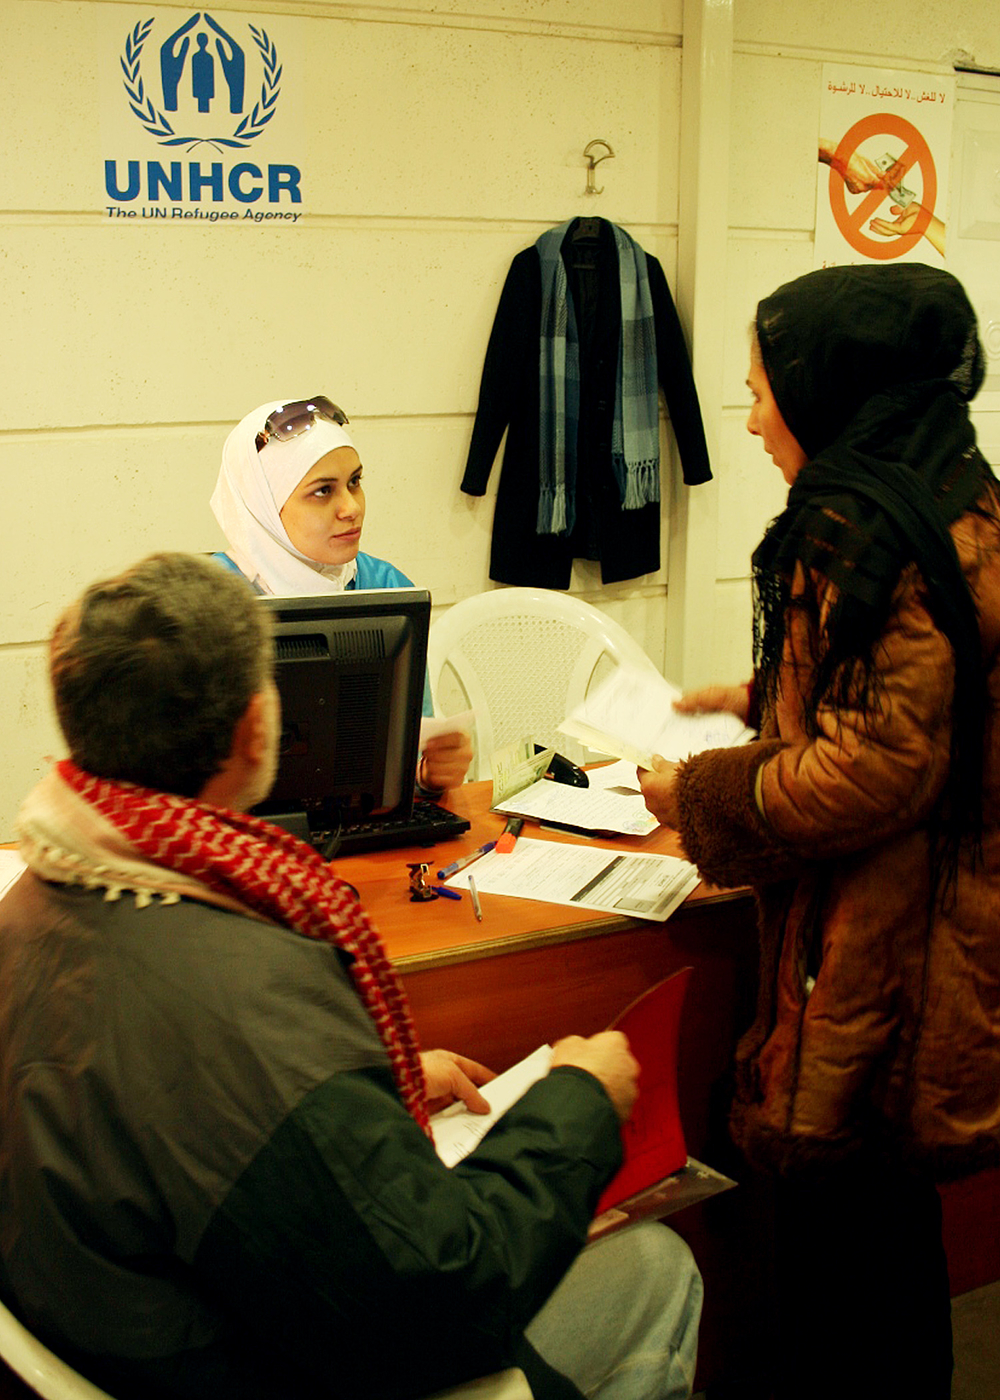 Iraqi refugees register at the UNHCR centre in Damascus. New figures reveal that refugees are suffering extremely high levels of trauma from the violence at home and their difficult circumstances in Syria.